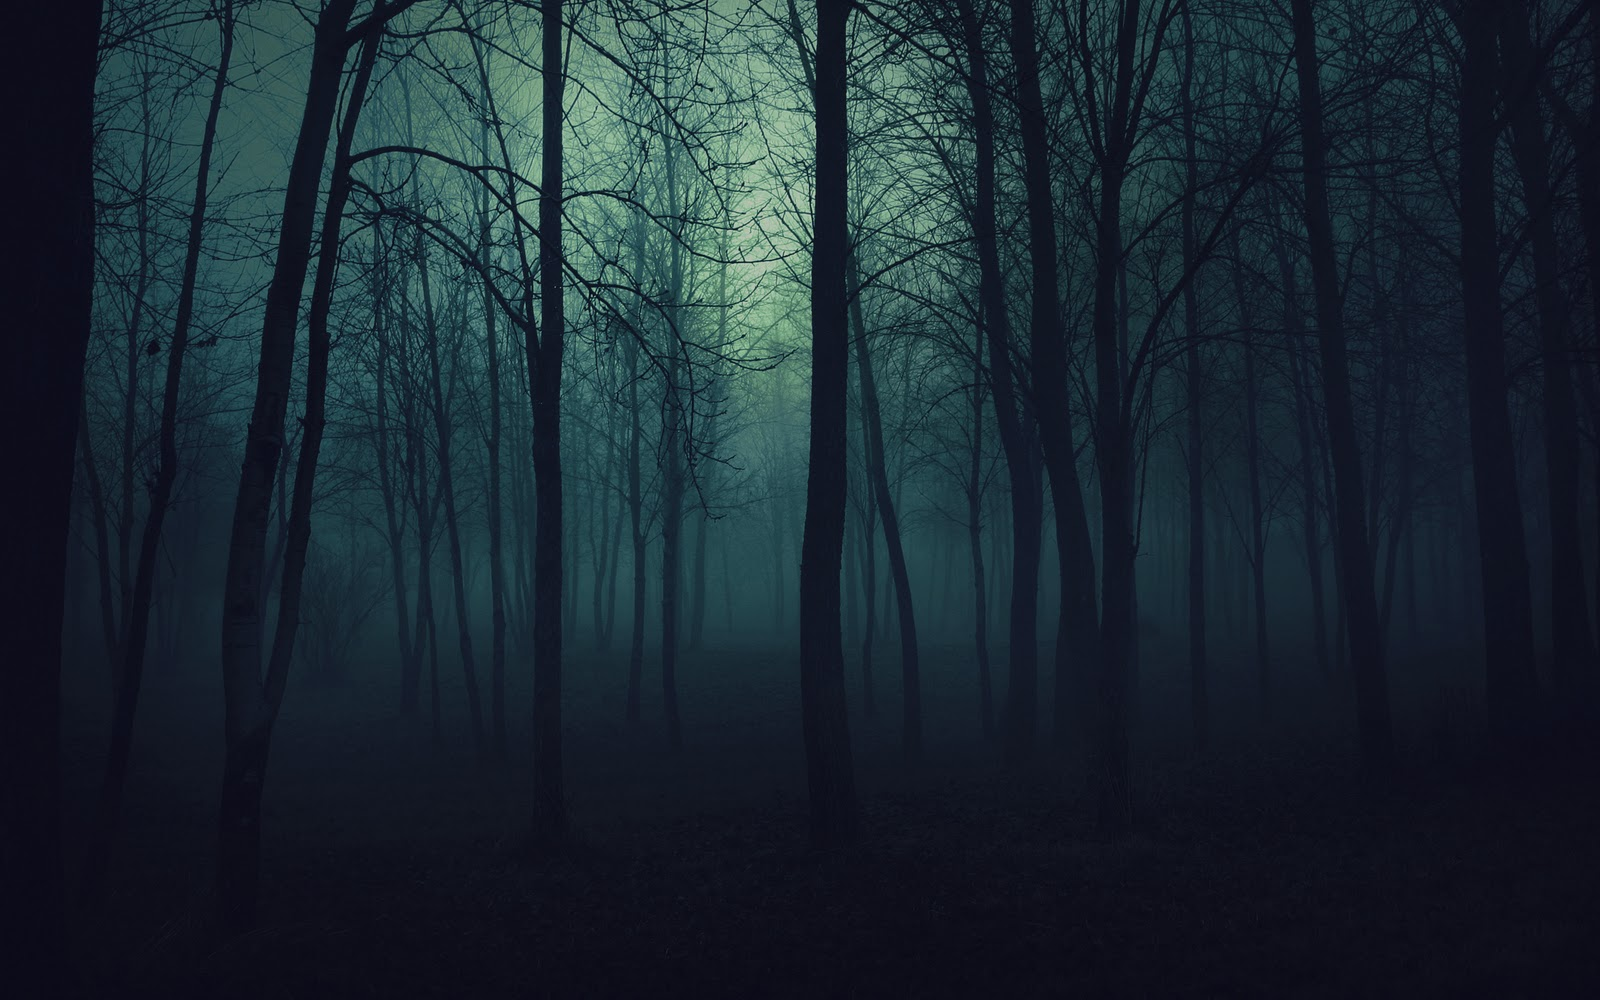 Scary Trees In An Autumn Night Home Of Wallpapers Free Download Hd Wallpapers